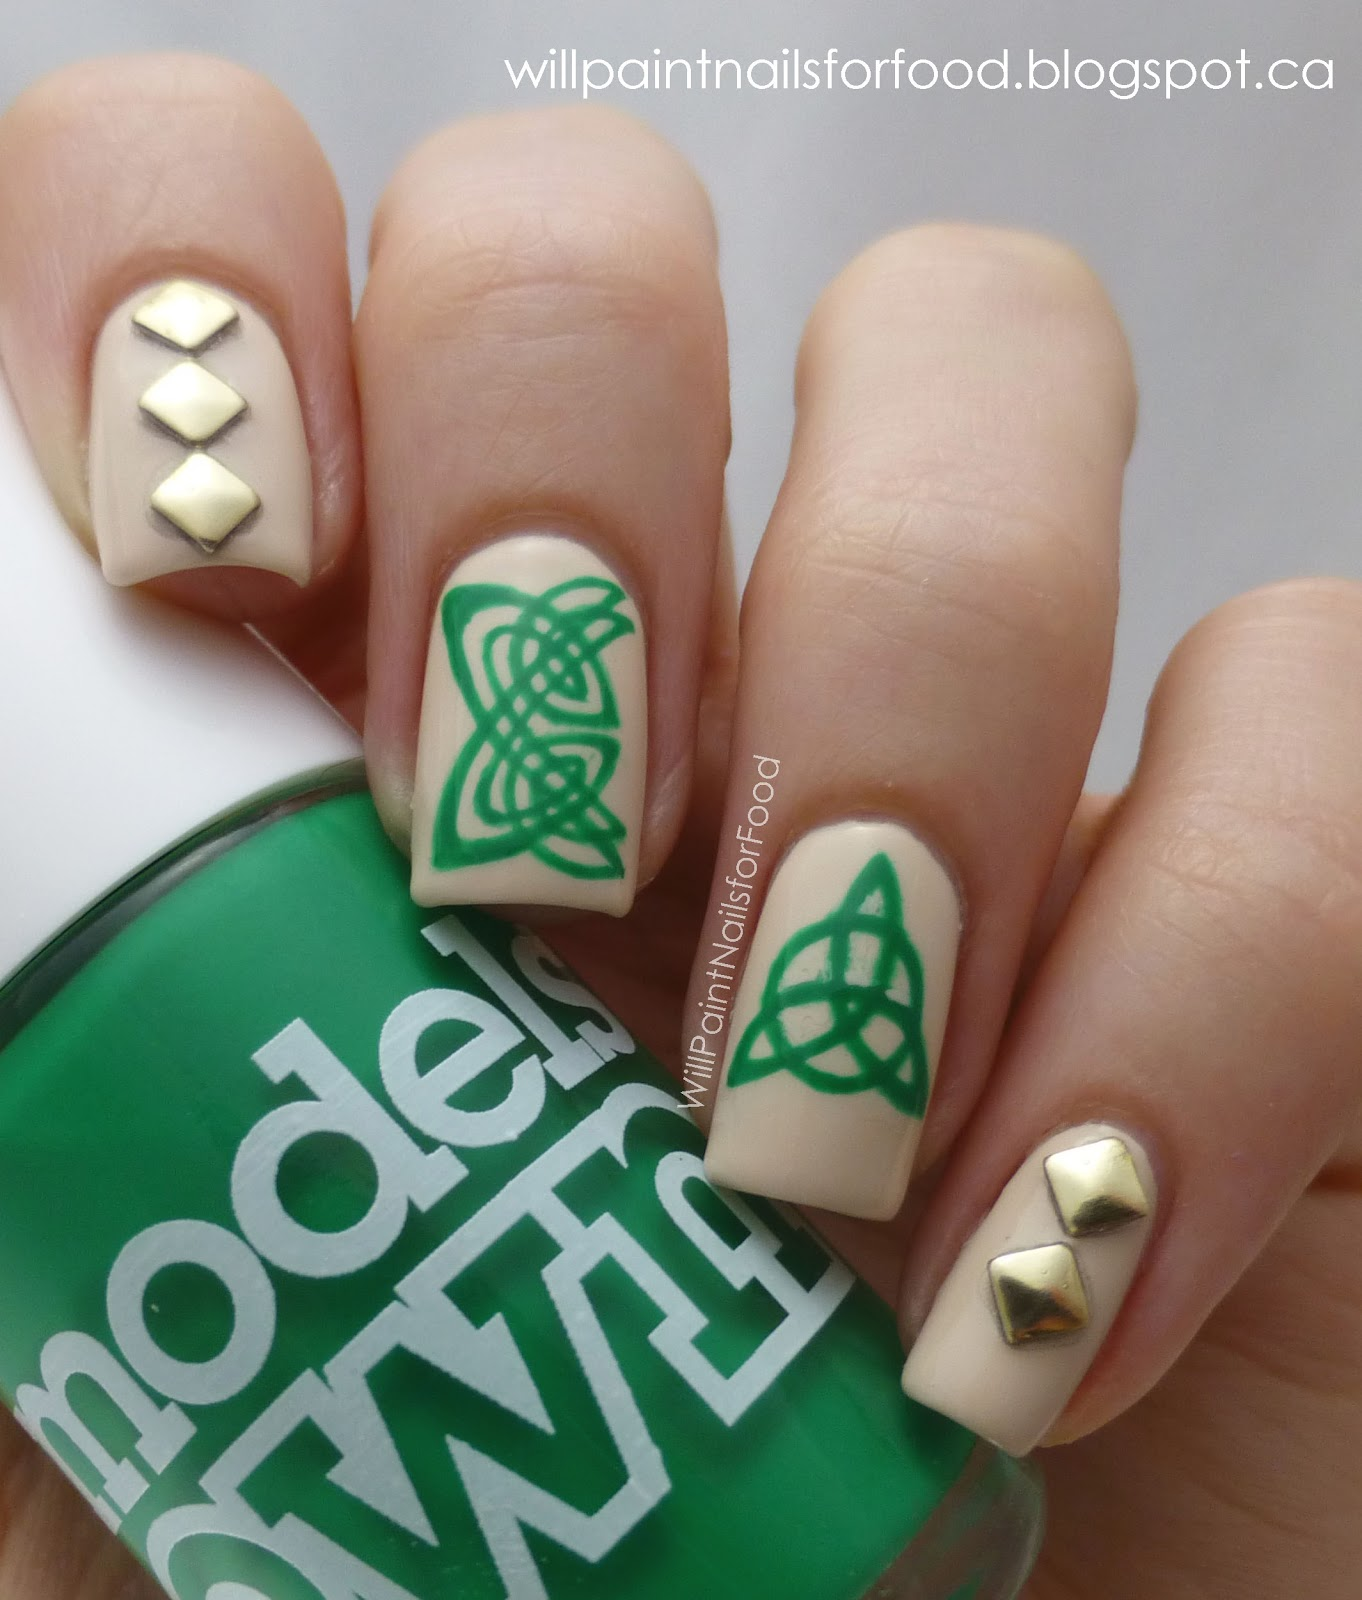 Will Paint Nails for Food: Celtic Knots and Studs!